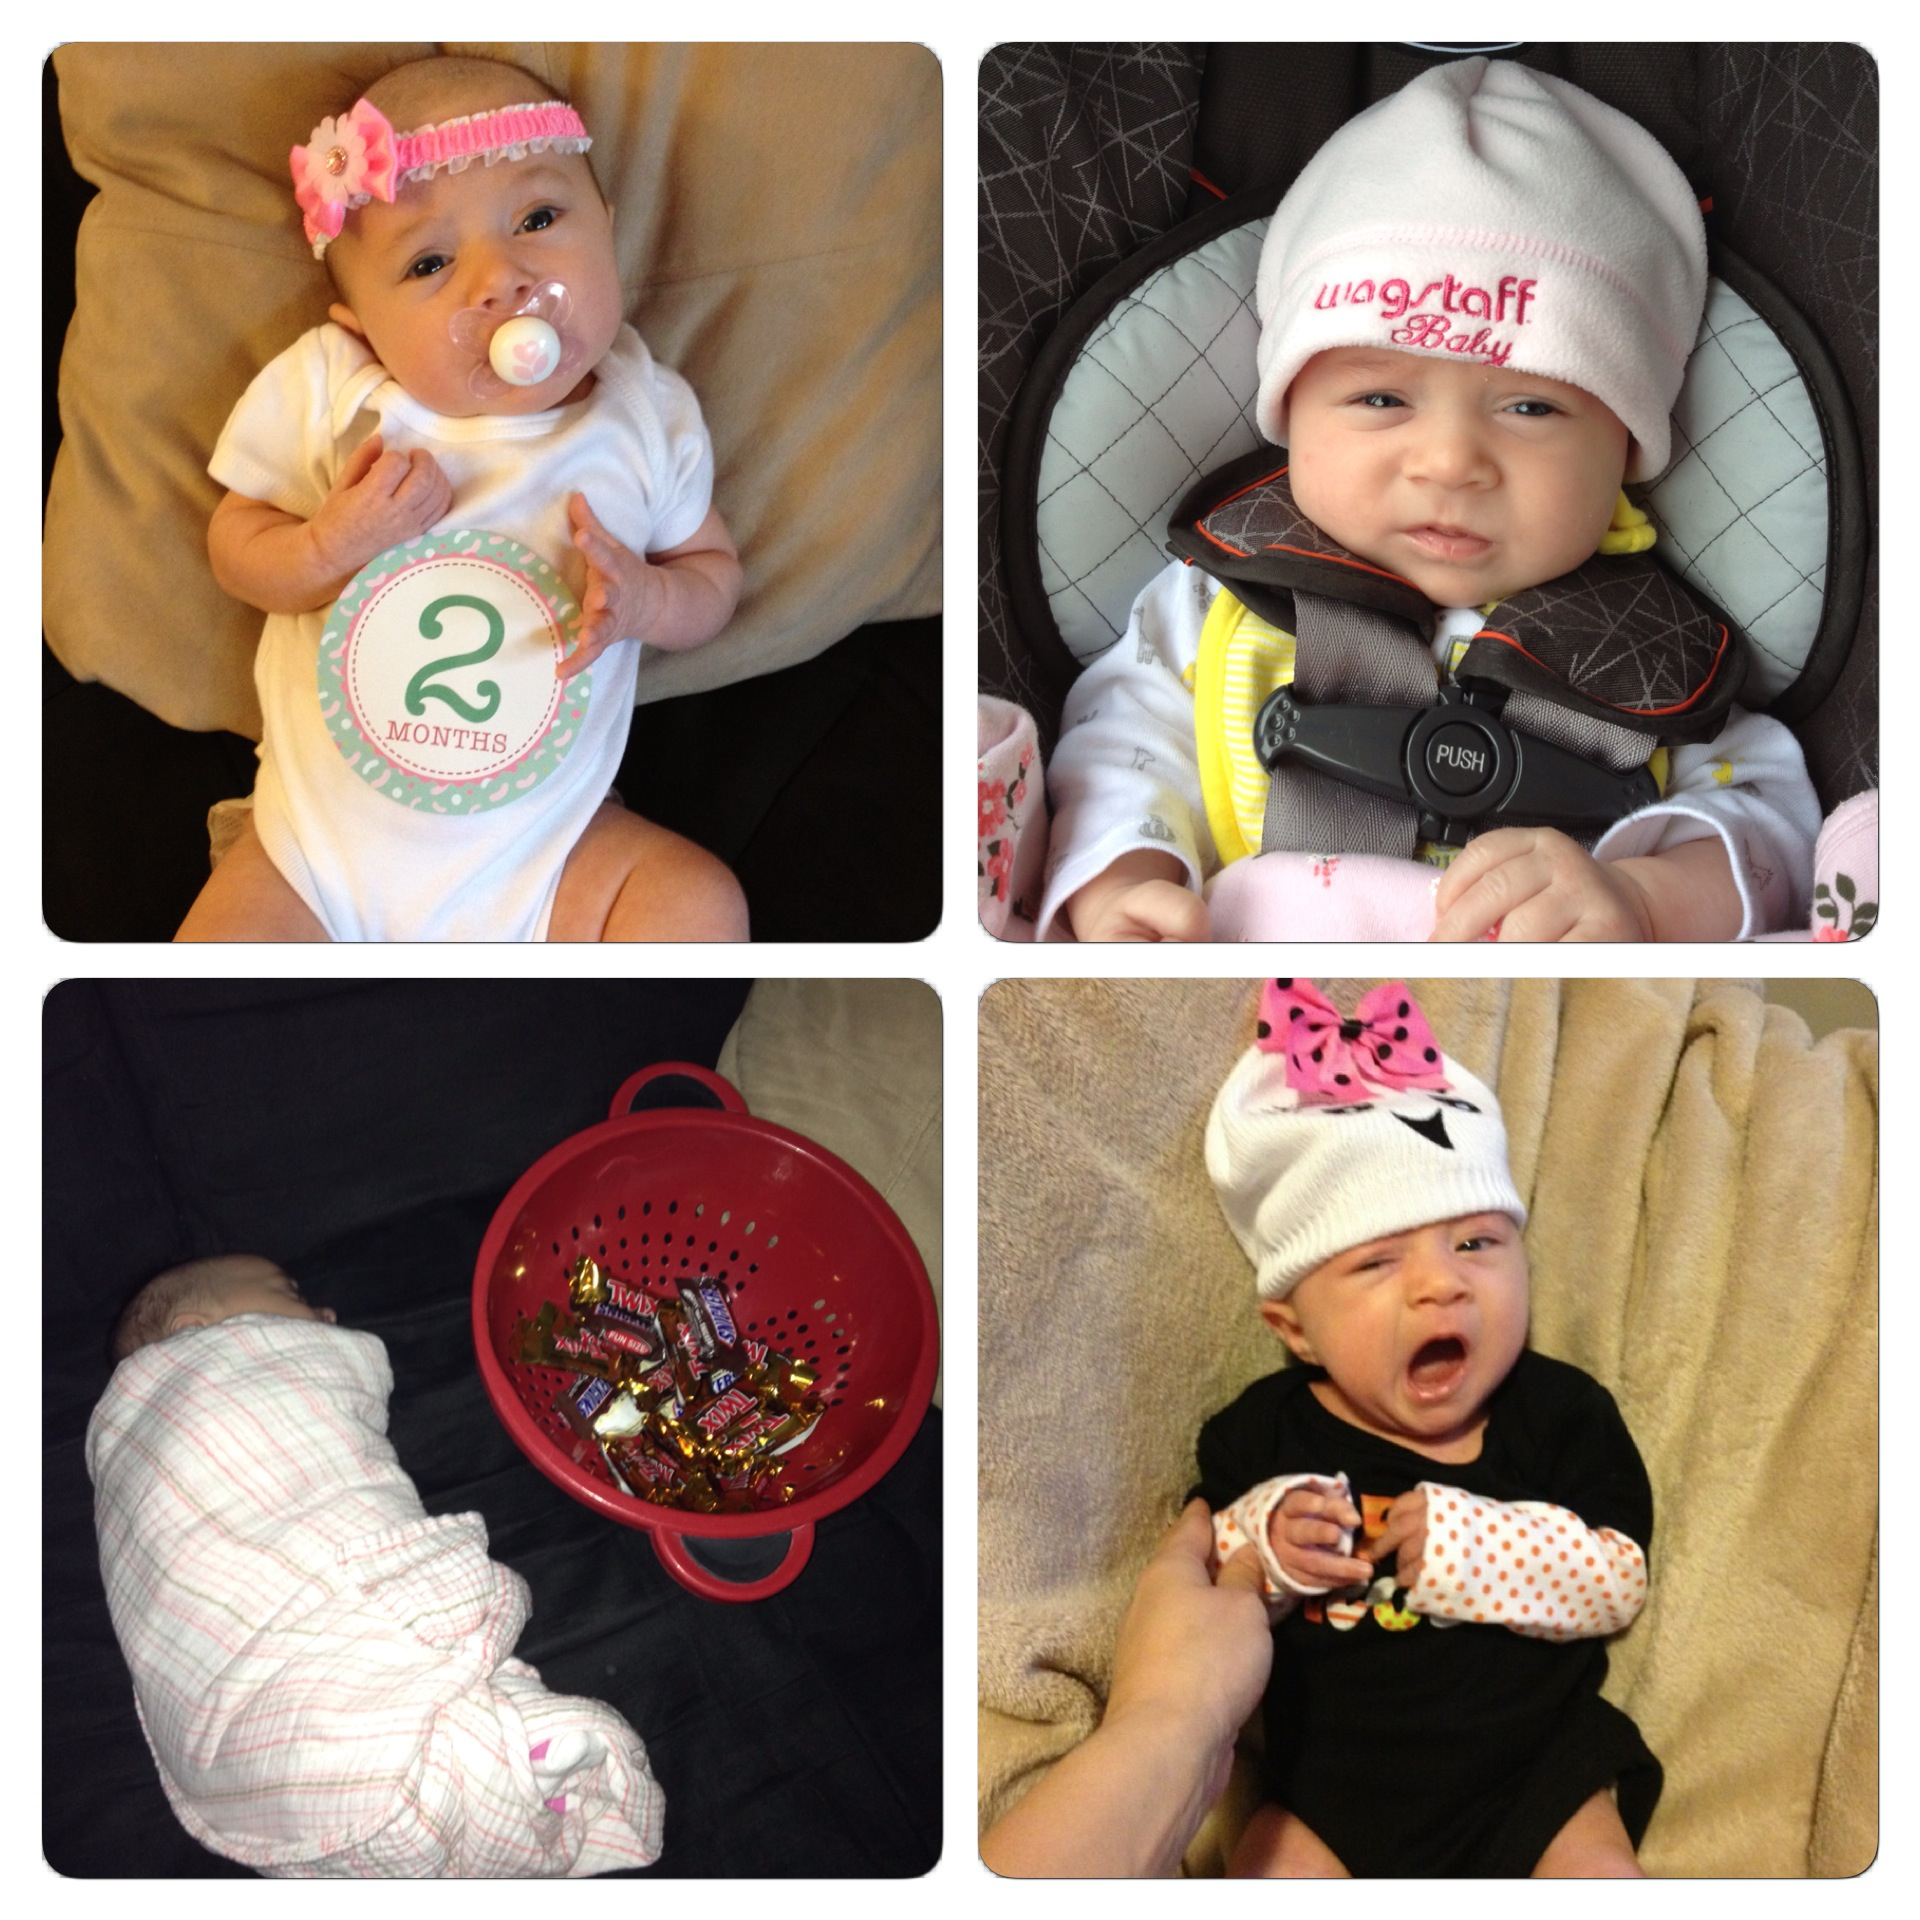 Here are some recent photos of Mikayla at two months.